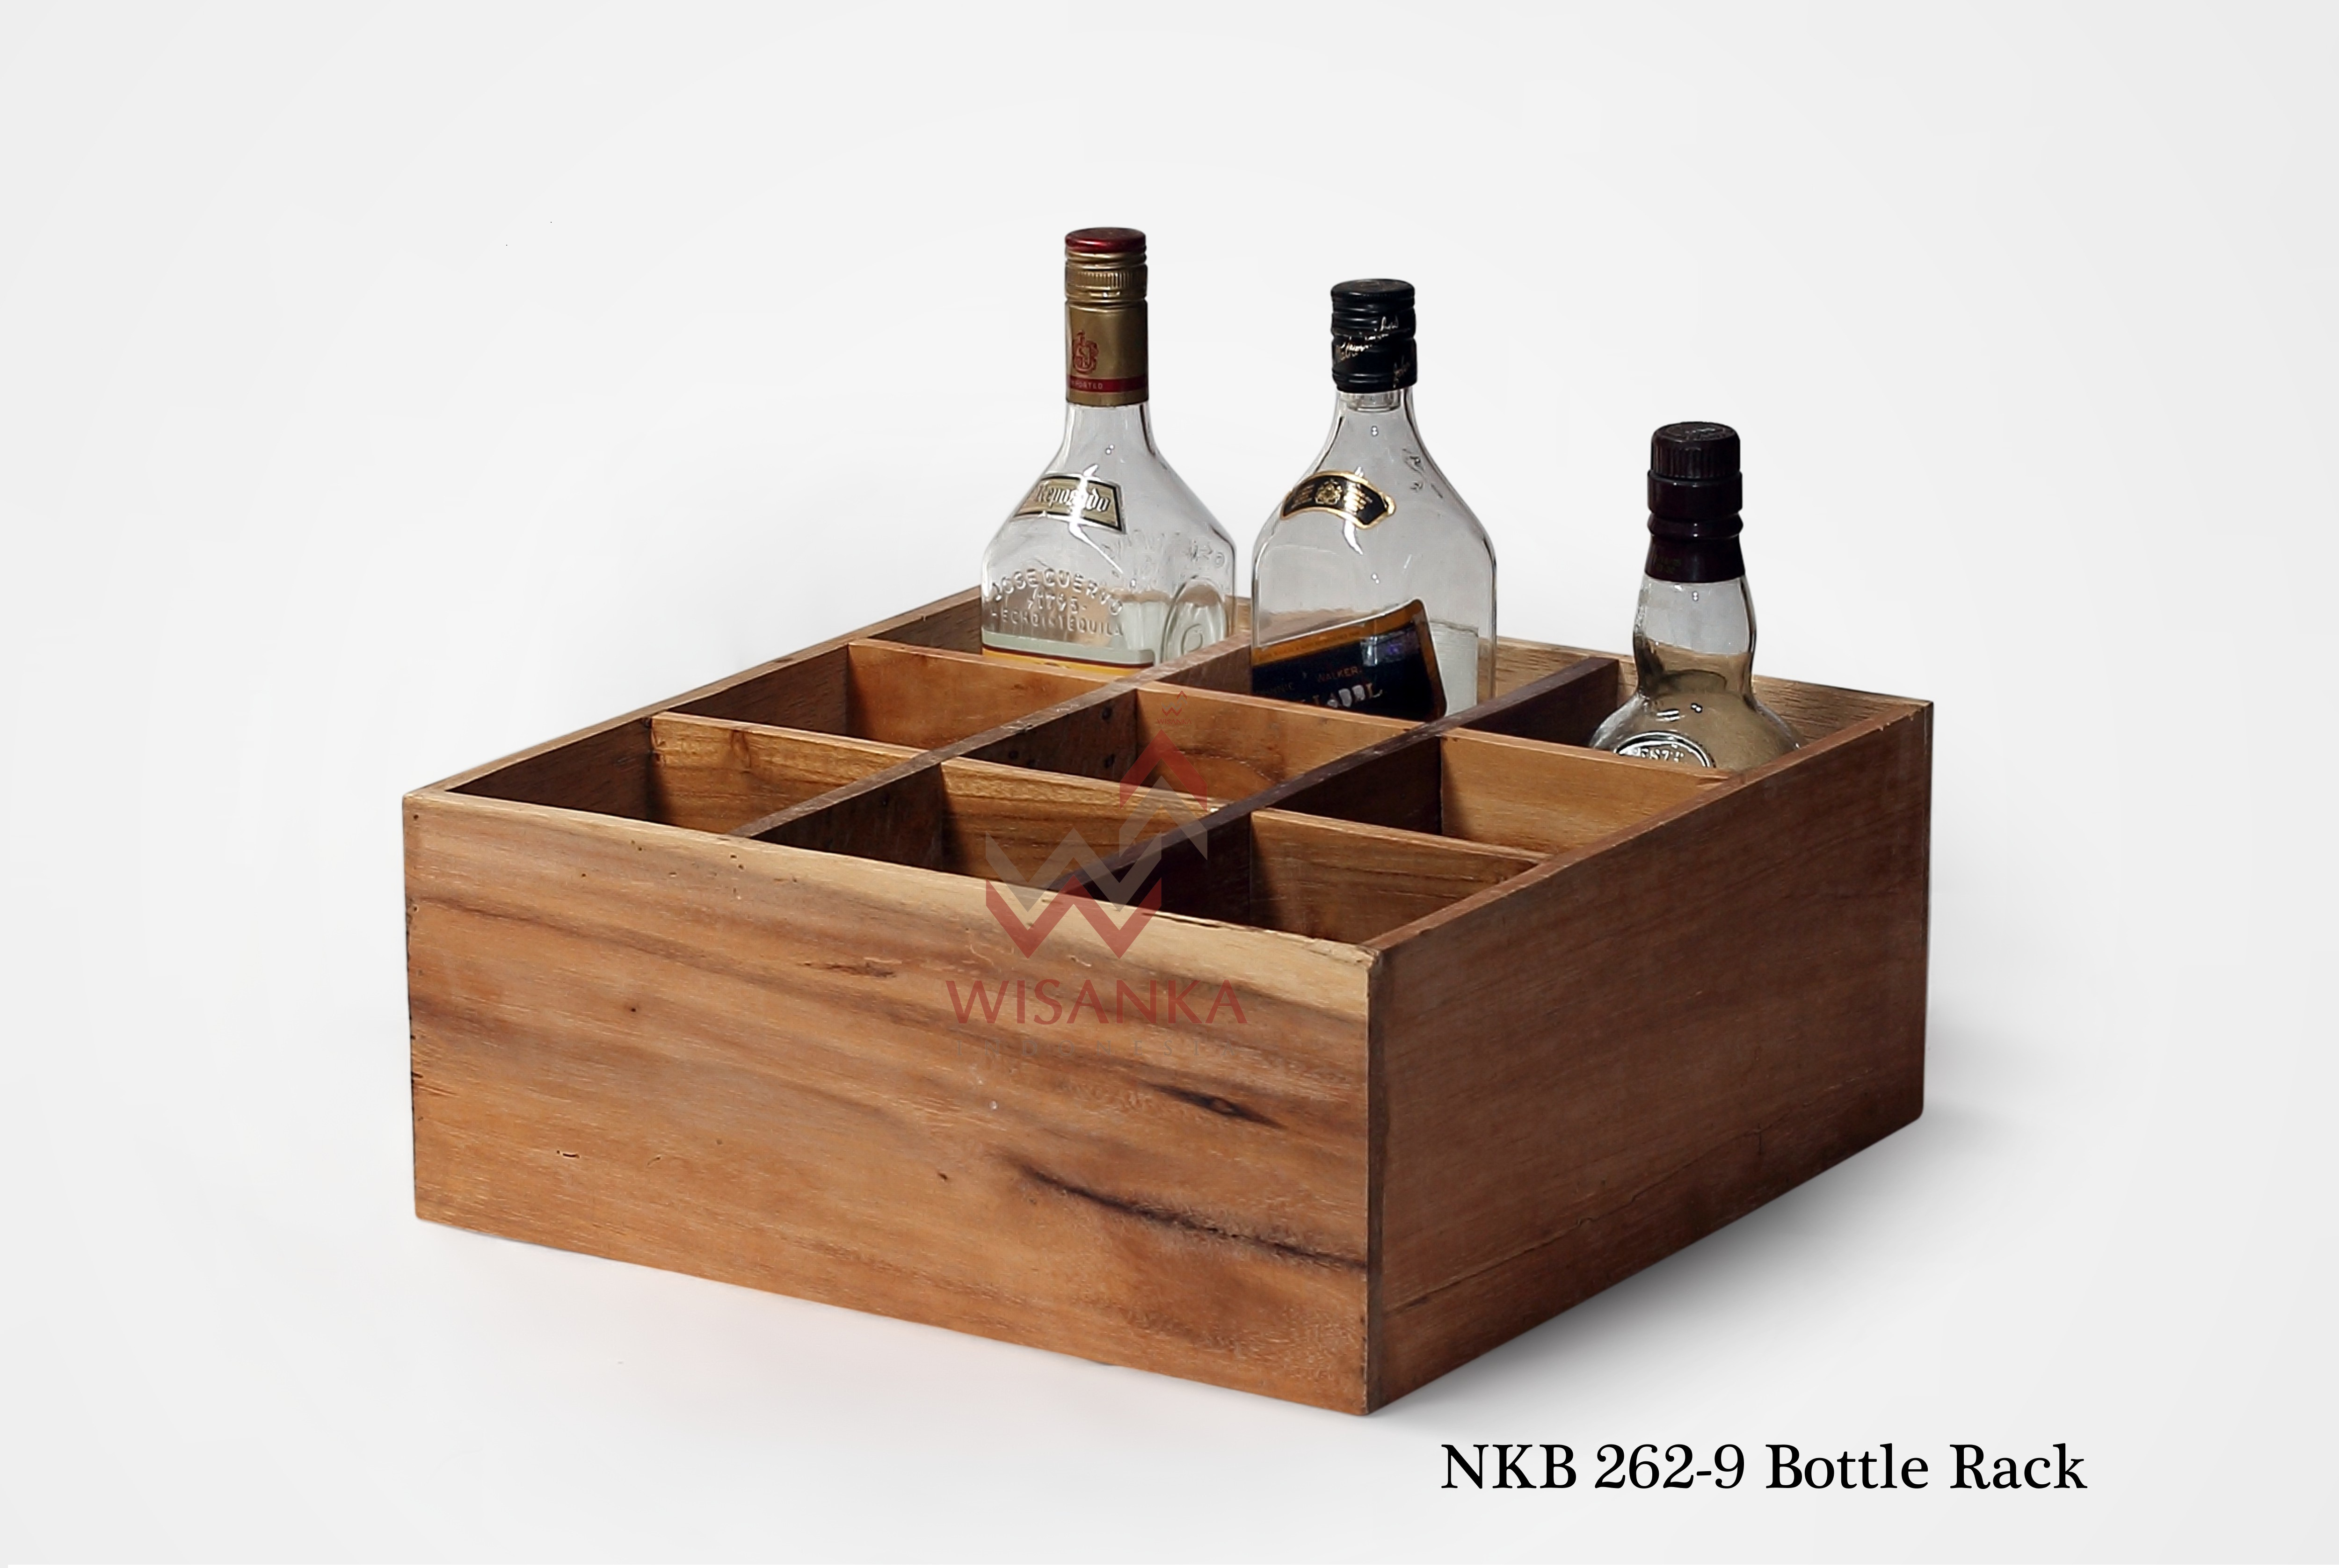 Wooden Bottle Rack Wooden Bottle Rack Indoor Mahogany Furniture Indonesia